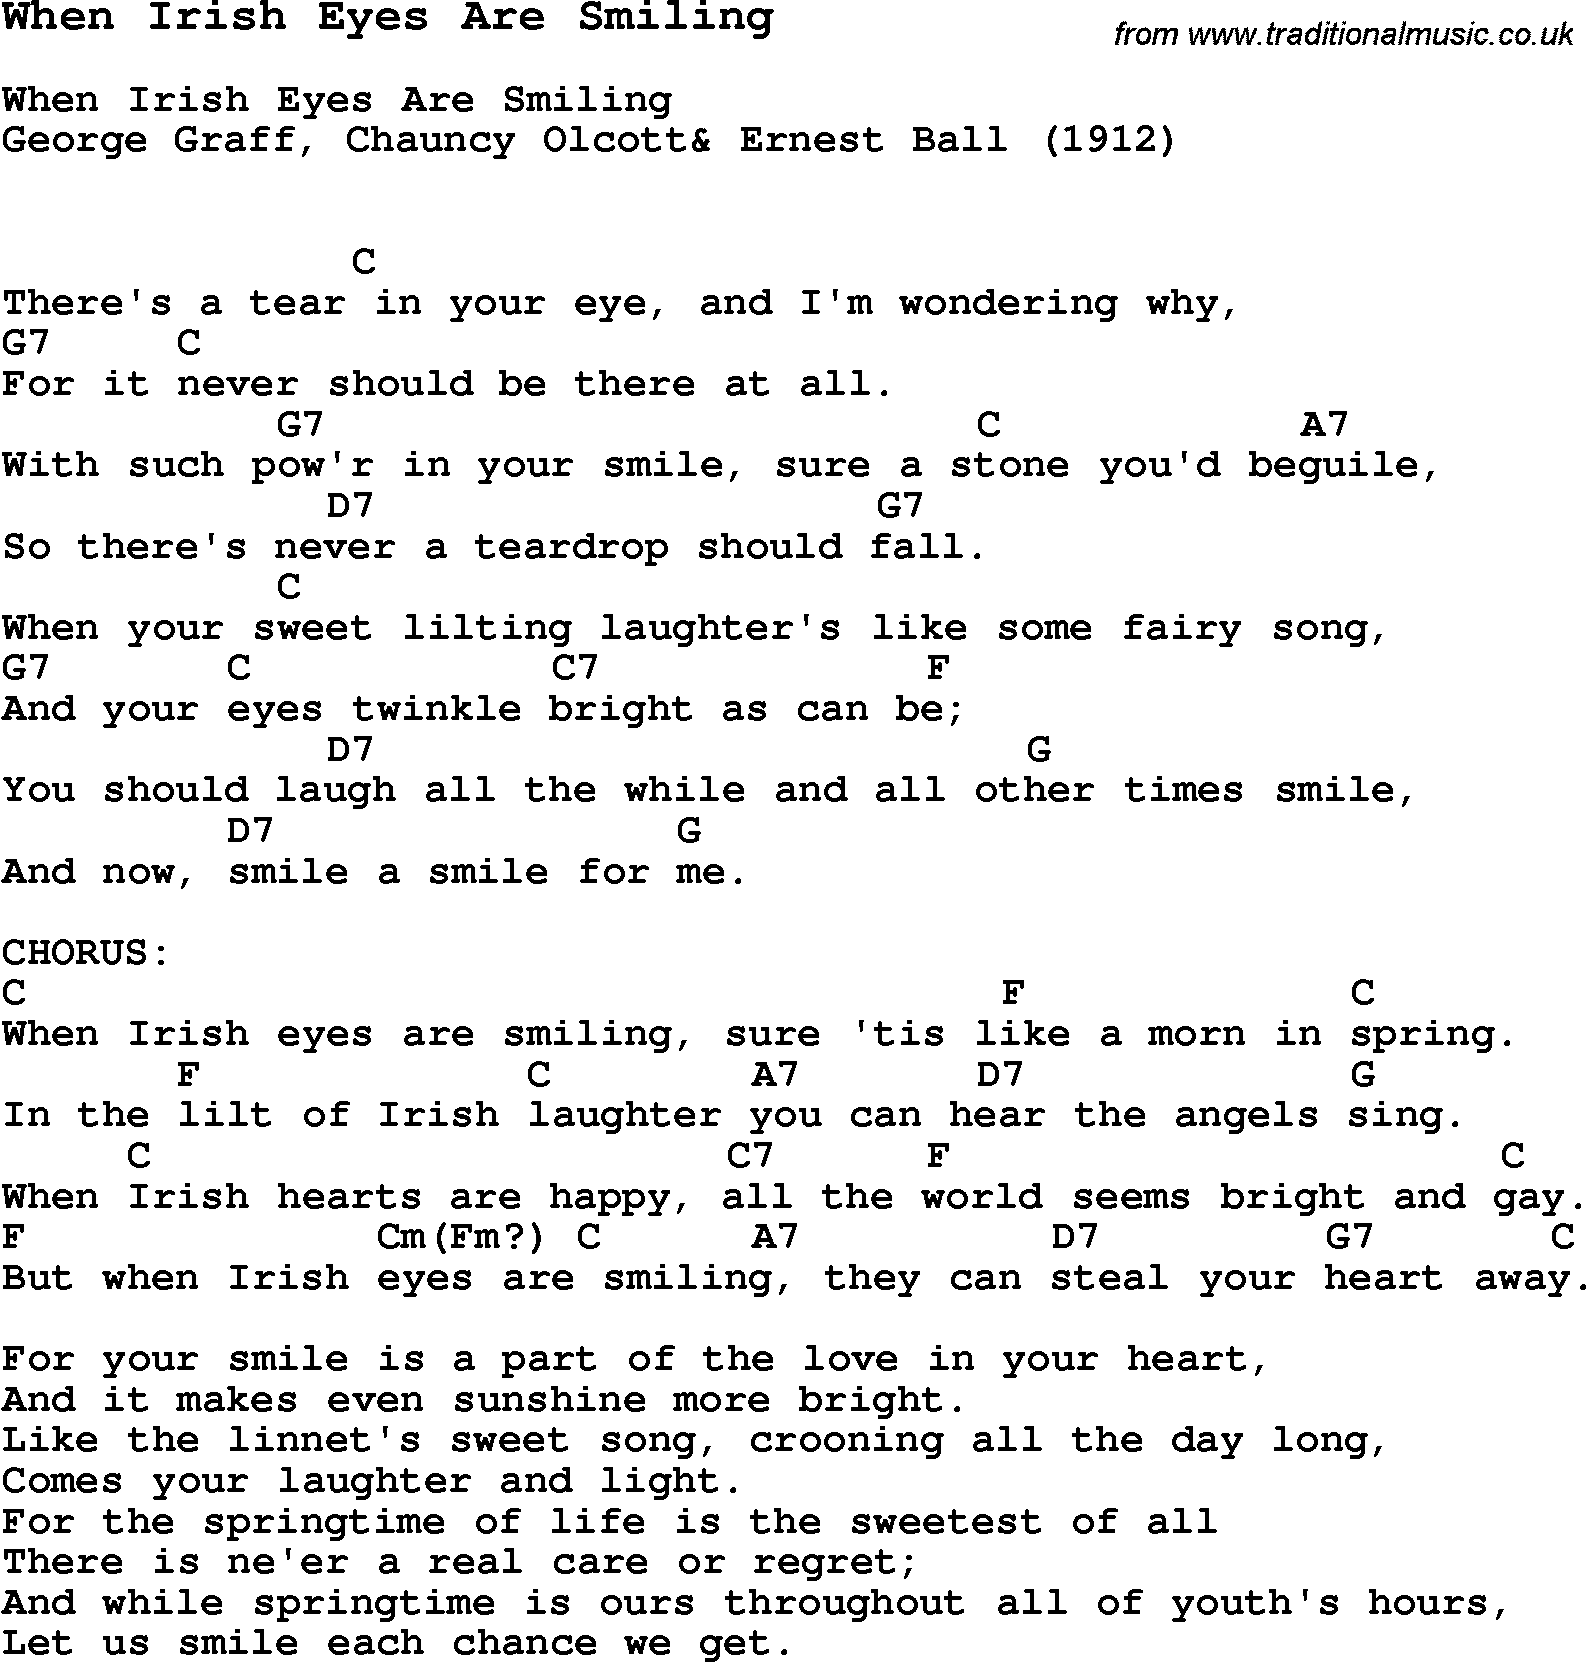 Guitar Chords And Lyrics For Beginners Irish Songs: NEW SONG LYRICS FOR WHEN IRISH EYES ARE SMILING